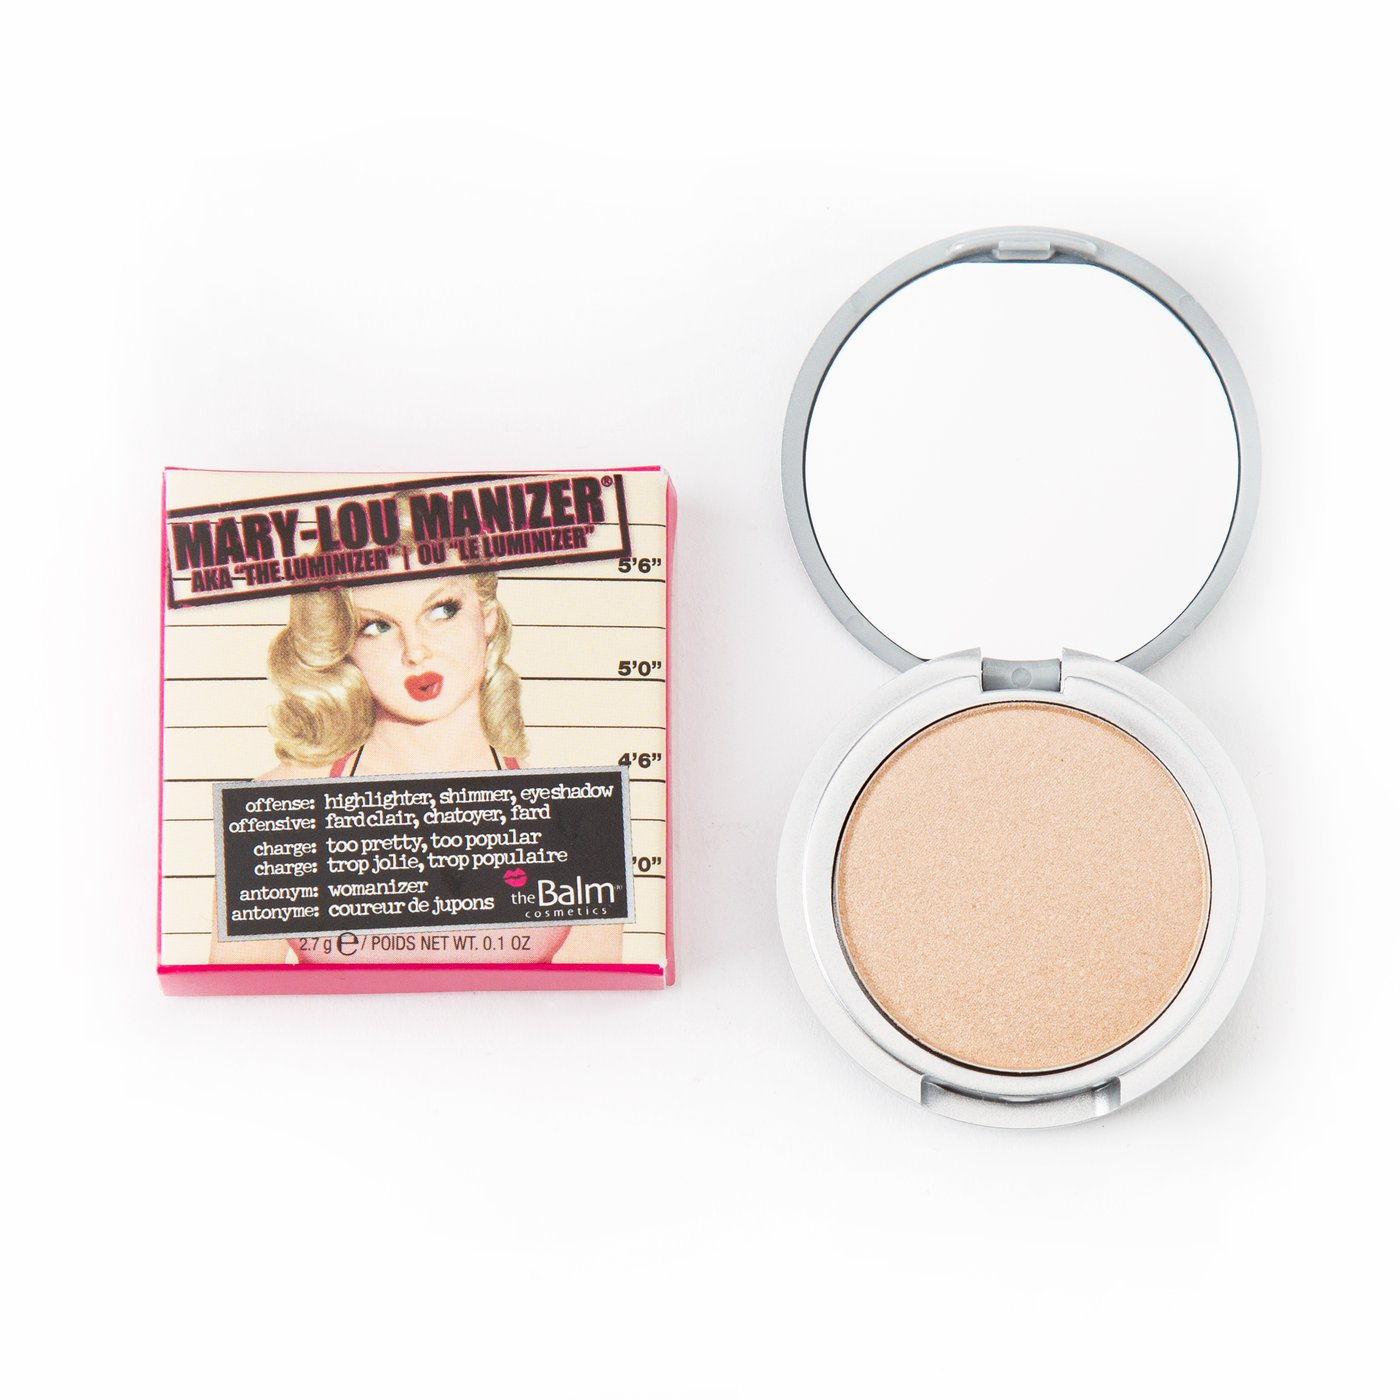 theBalm Mary Lou Manizer Shimmer Highlighter - Champagne - Travel Size